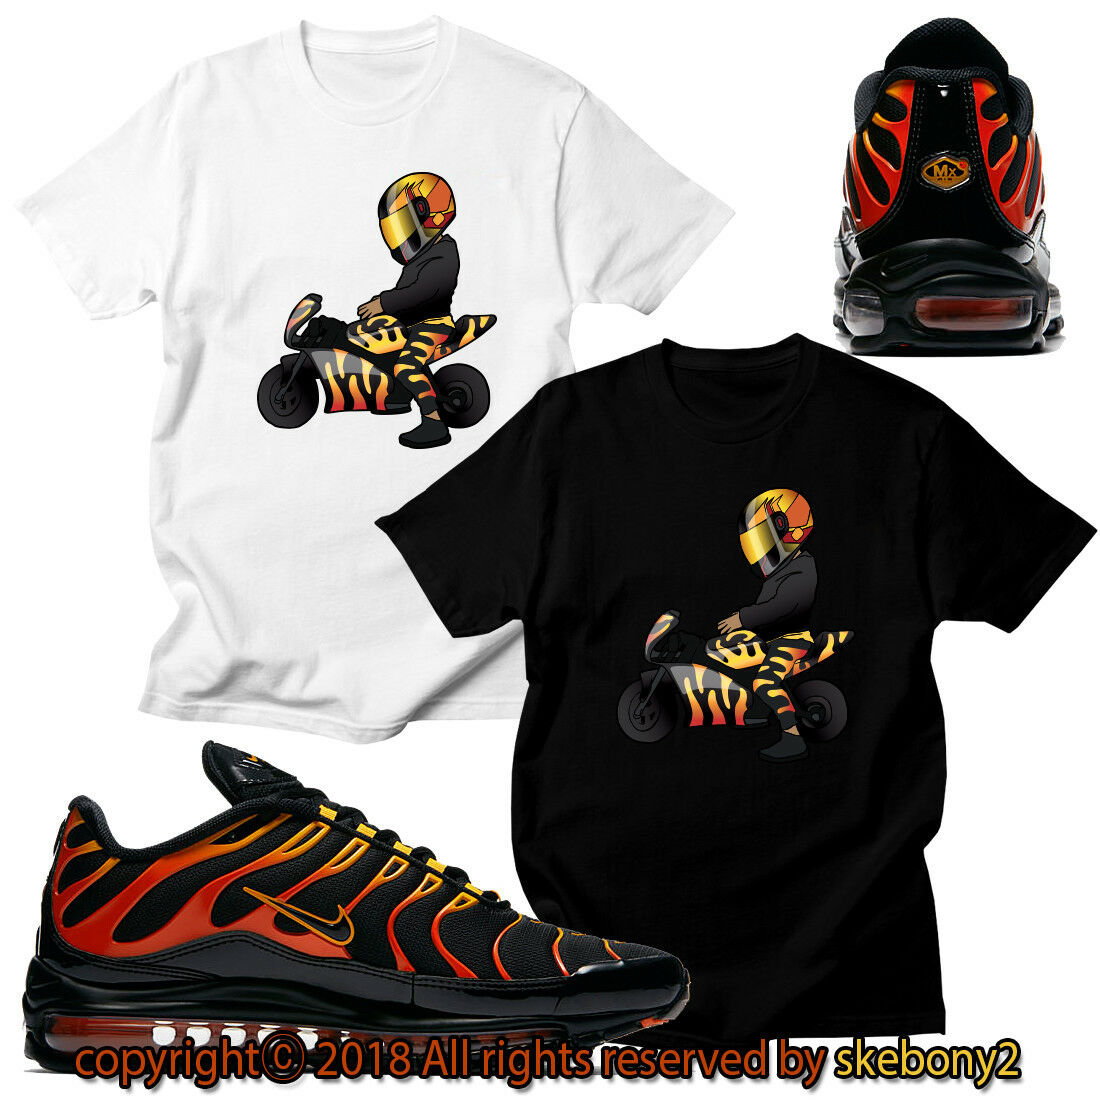 CAMISETA PERSONALIZADA a juego NIKE BRINGS BACK COLORWAY AIR MAX 97 Plus AM97 1-1-7